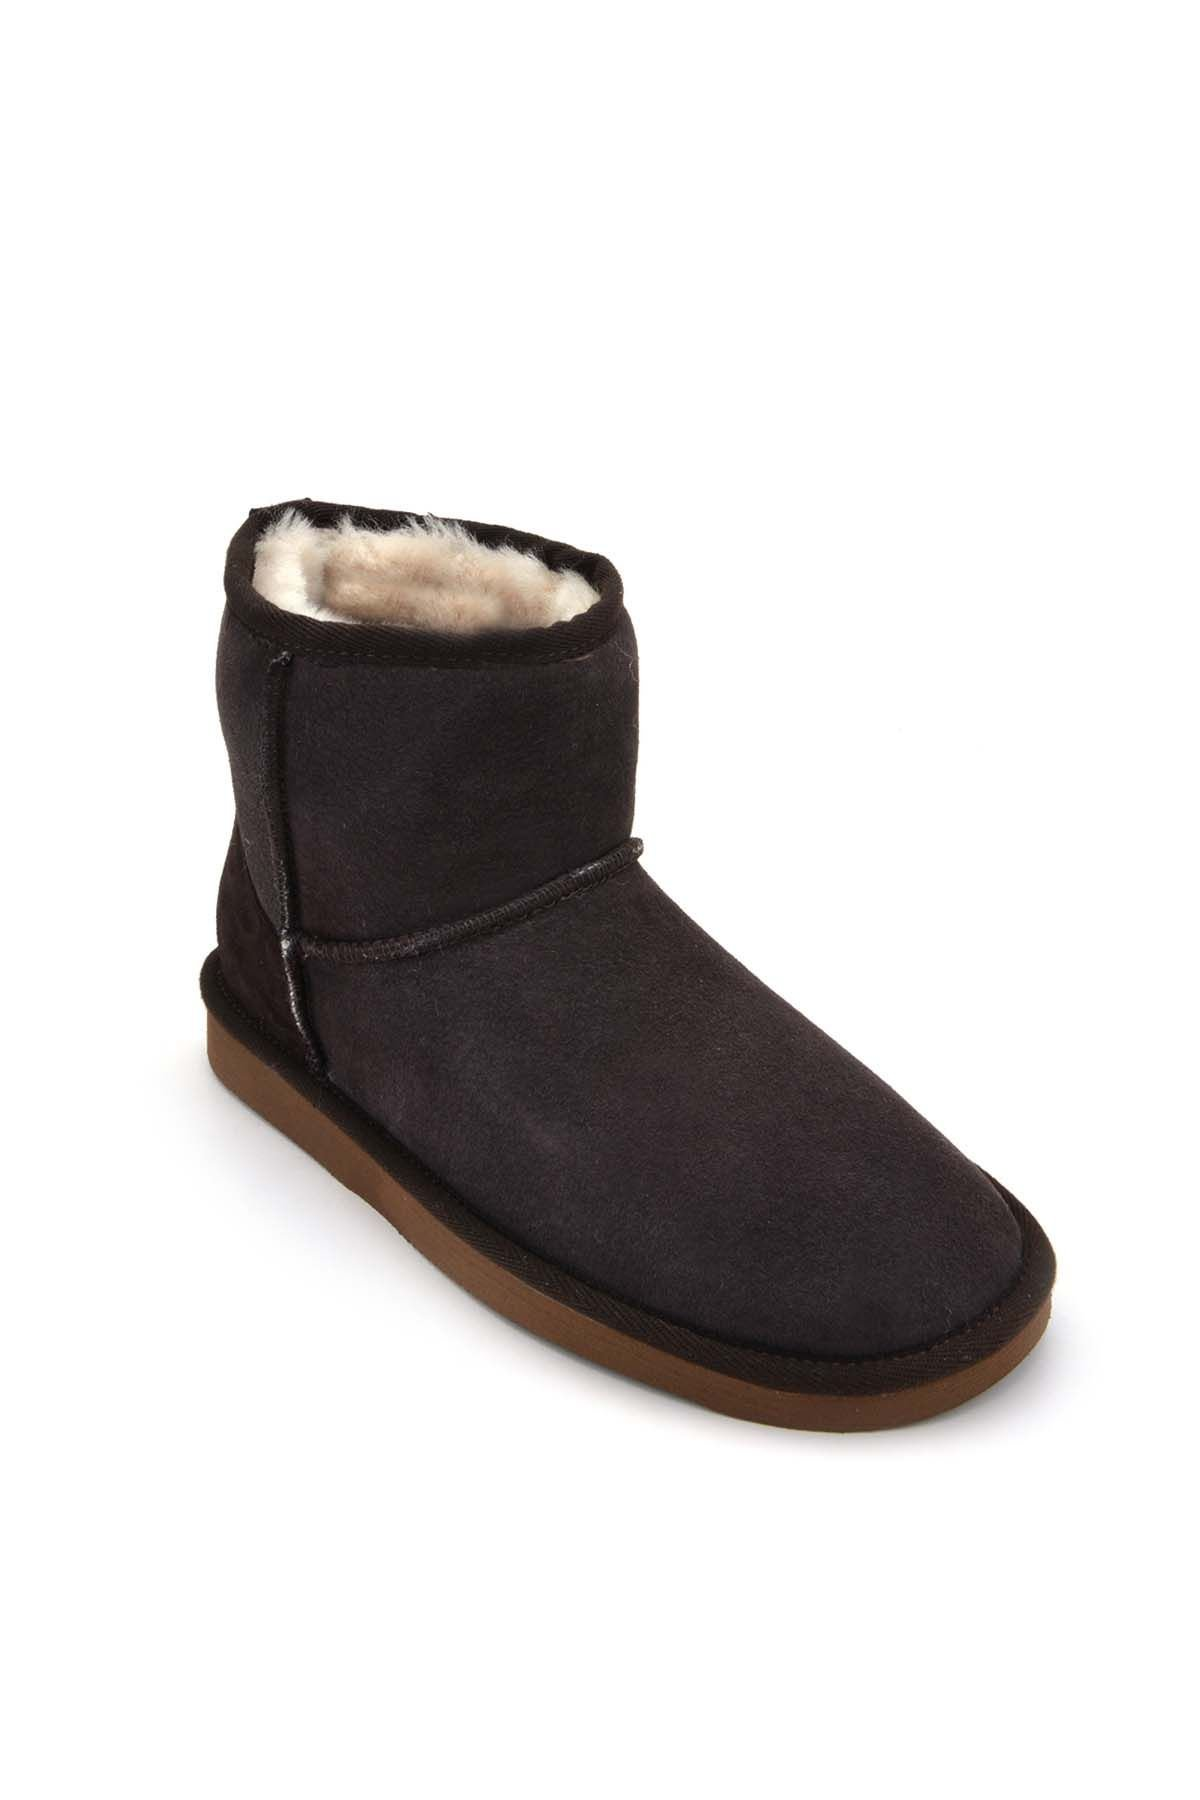 Cool Moon Women Boots From Genuine Sheepskin Fur 980335 Brown